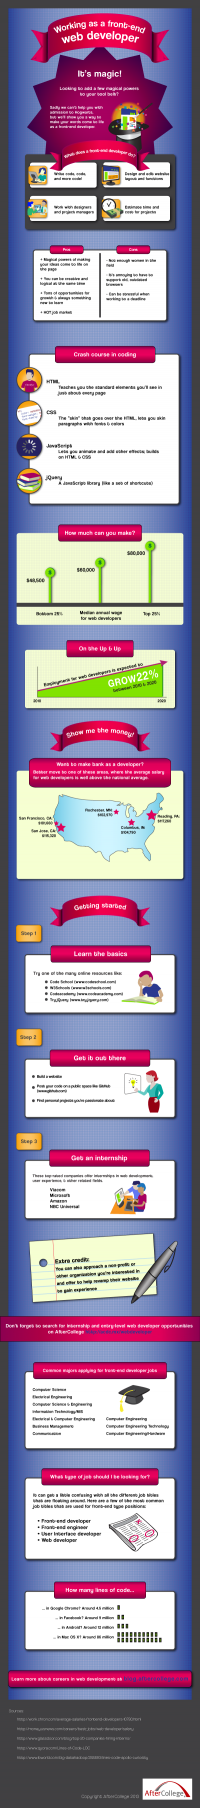 Infographic: A work for web designers and developers   HTML5 and CSS3 Tutorials at Script Tutorials